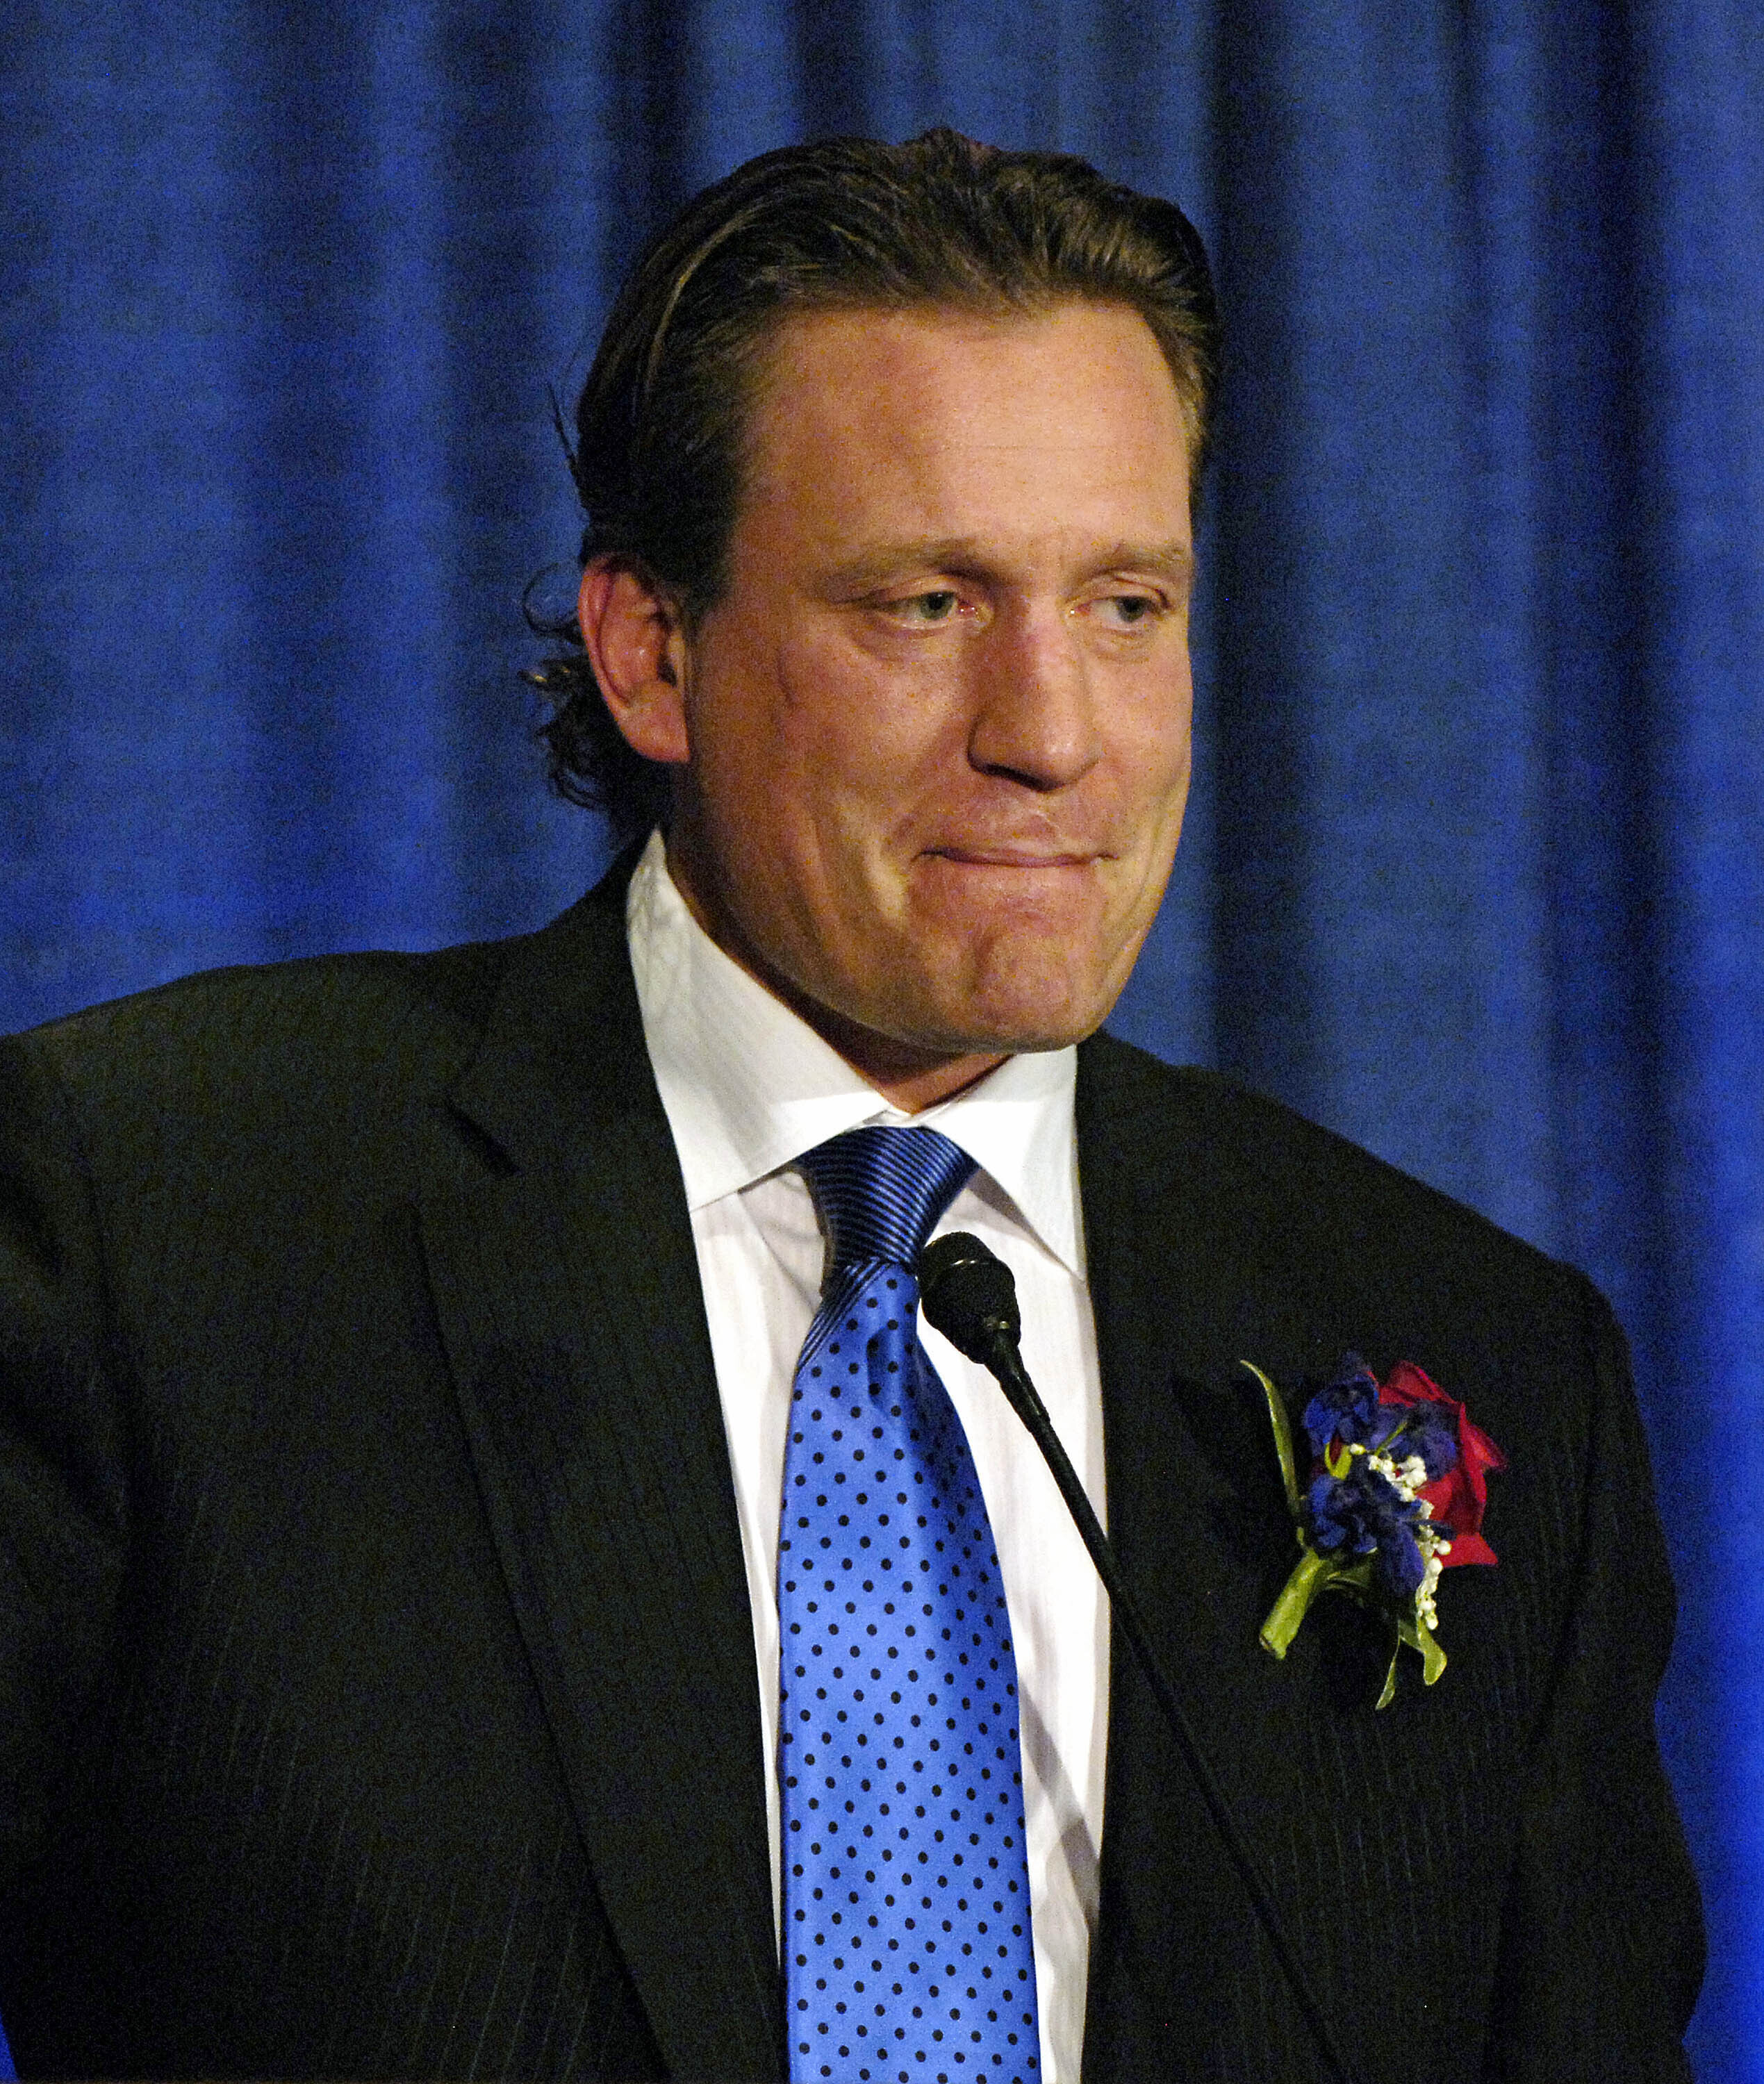 President Trump praised former NHL player and broadcaster Jeremy Roenick at a Phoenix rally on Wednesday.